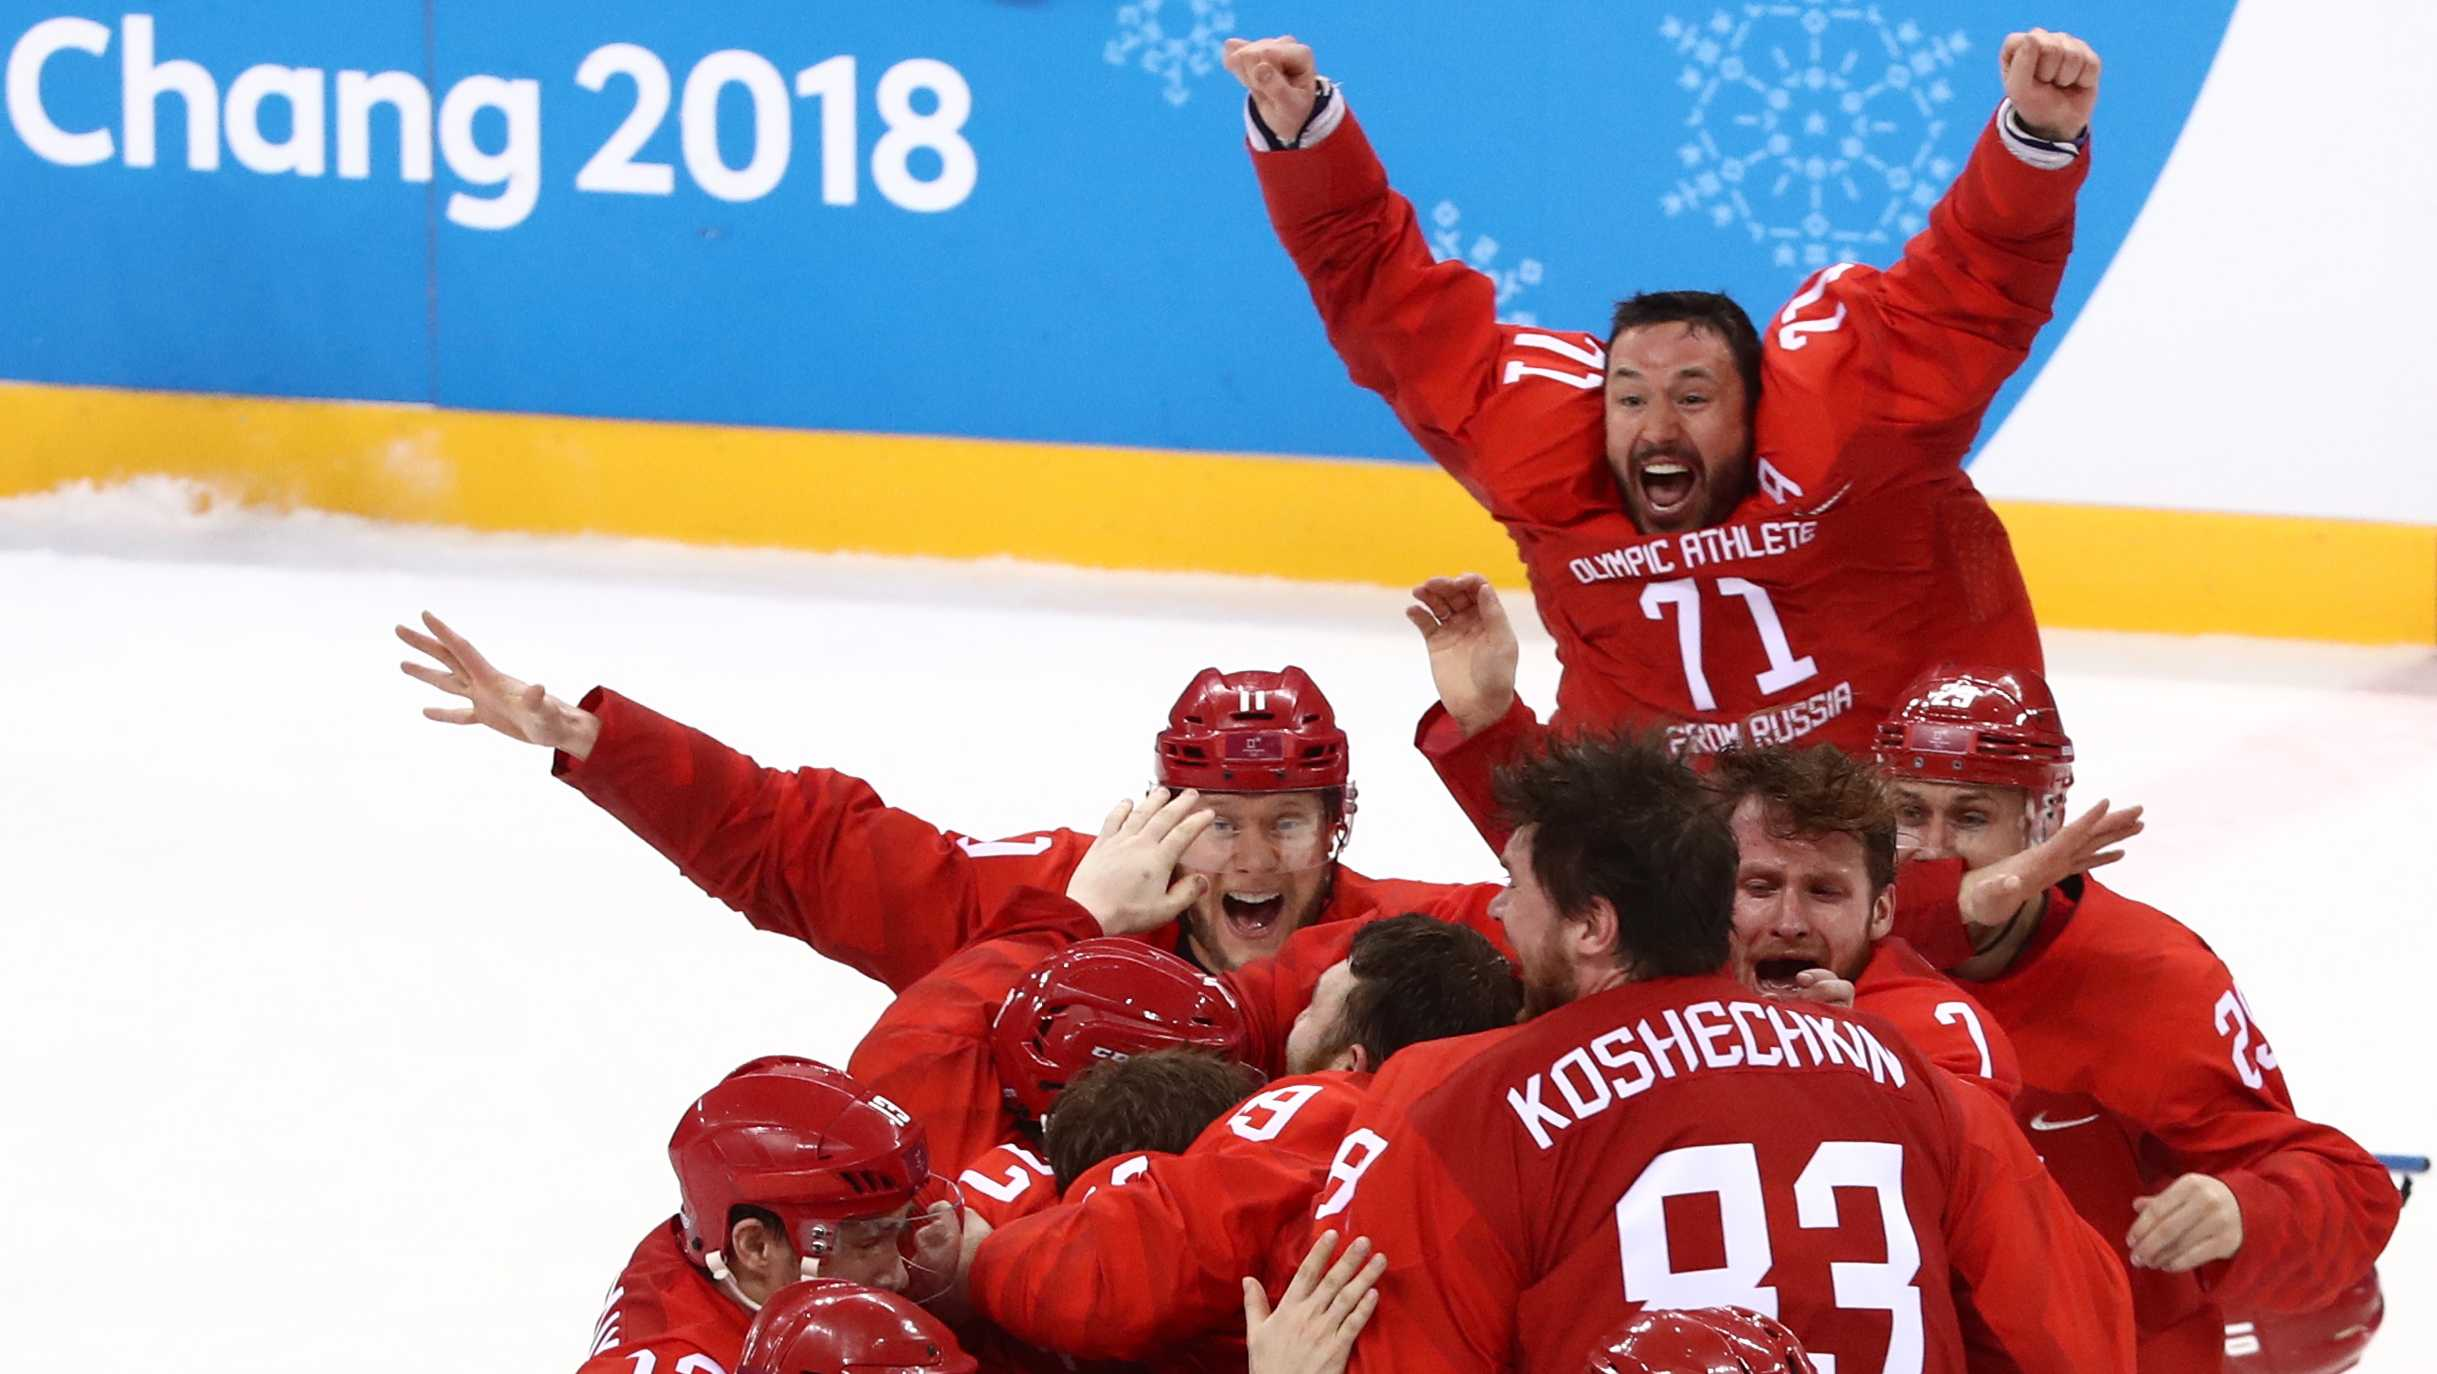 The Olympic Athletes from Russia celebrate their victory in the men's gold medal ice hockey game against Germany at Gangneung Hockey Centre at the 2018 Winter Olympic Games.